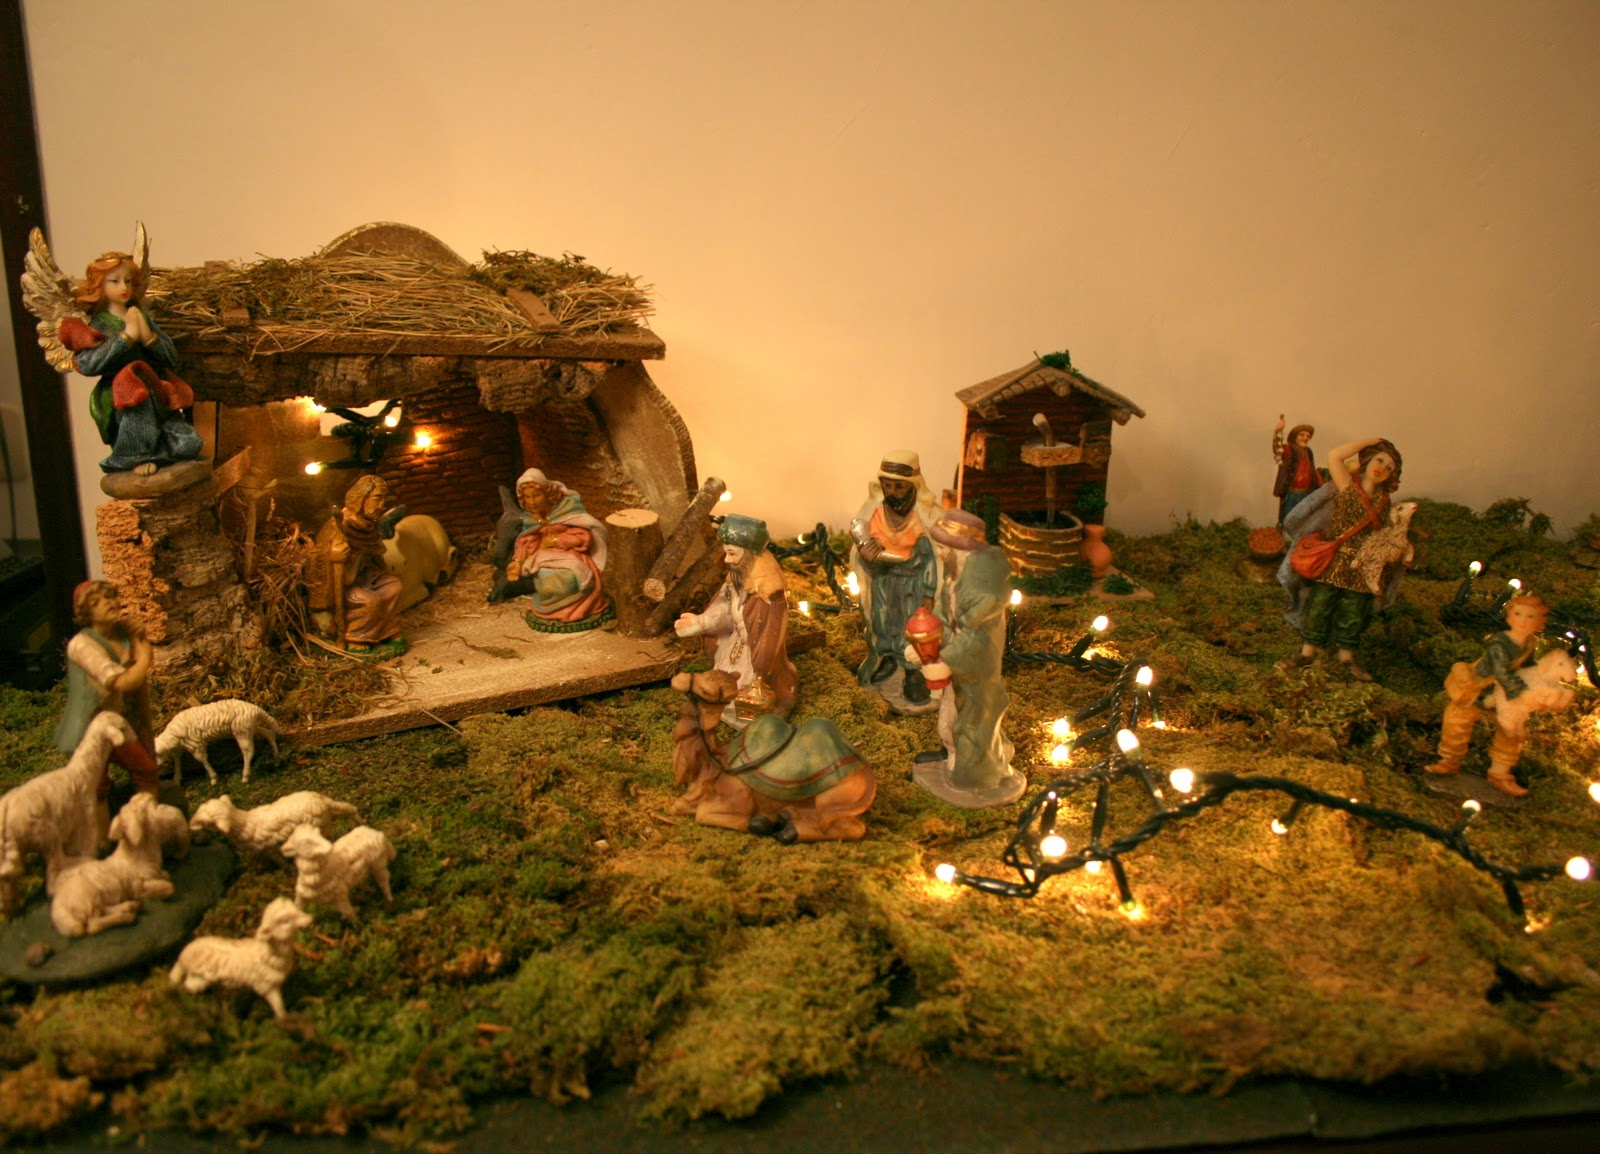 IL PRESEPE / The nativity scene ~ A Foreigner in Italy